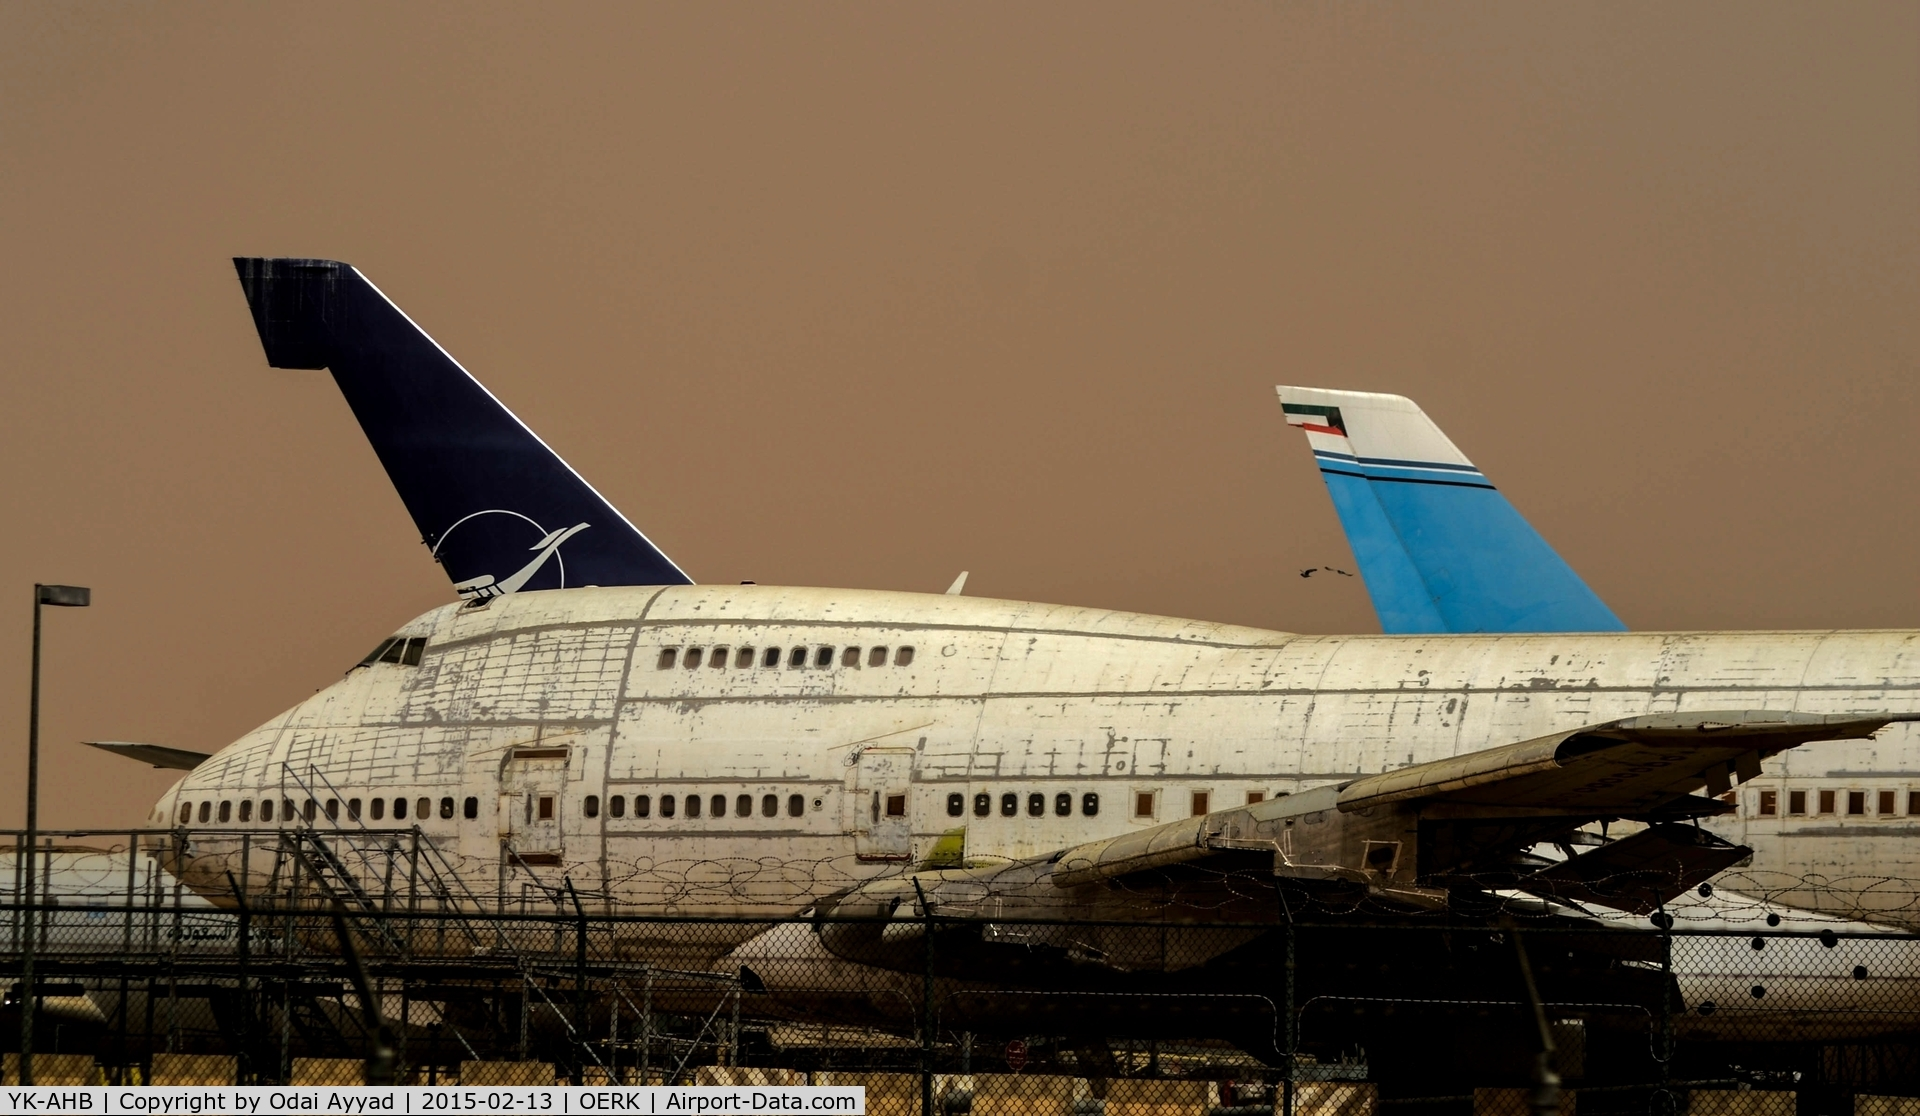 YK-AHB, 1976 Boeing 747SP-94 C/N 21175, Dusty day in Riyadh Airport and looking sadly to these two B747SP Syrian Airlines which are out of service